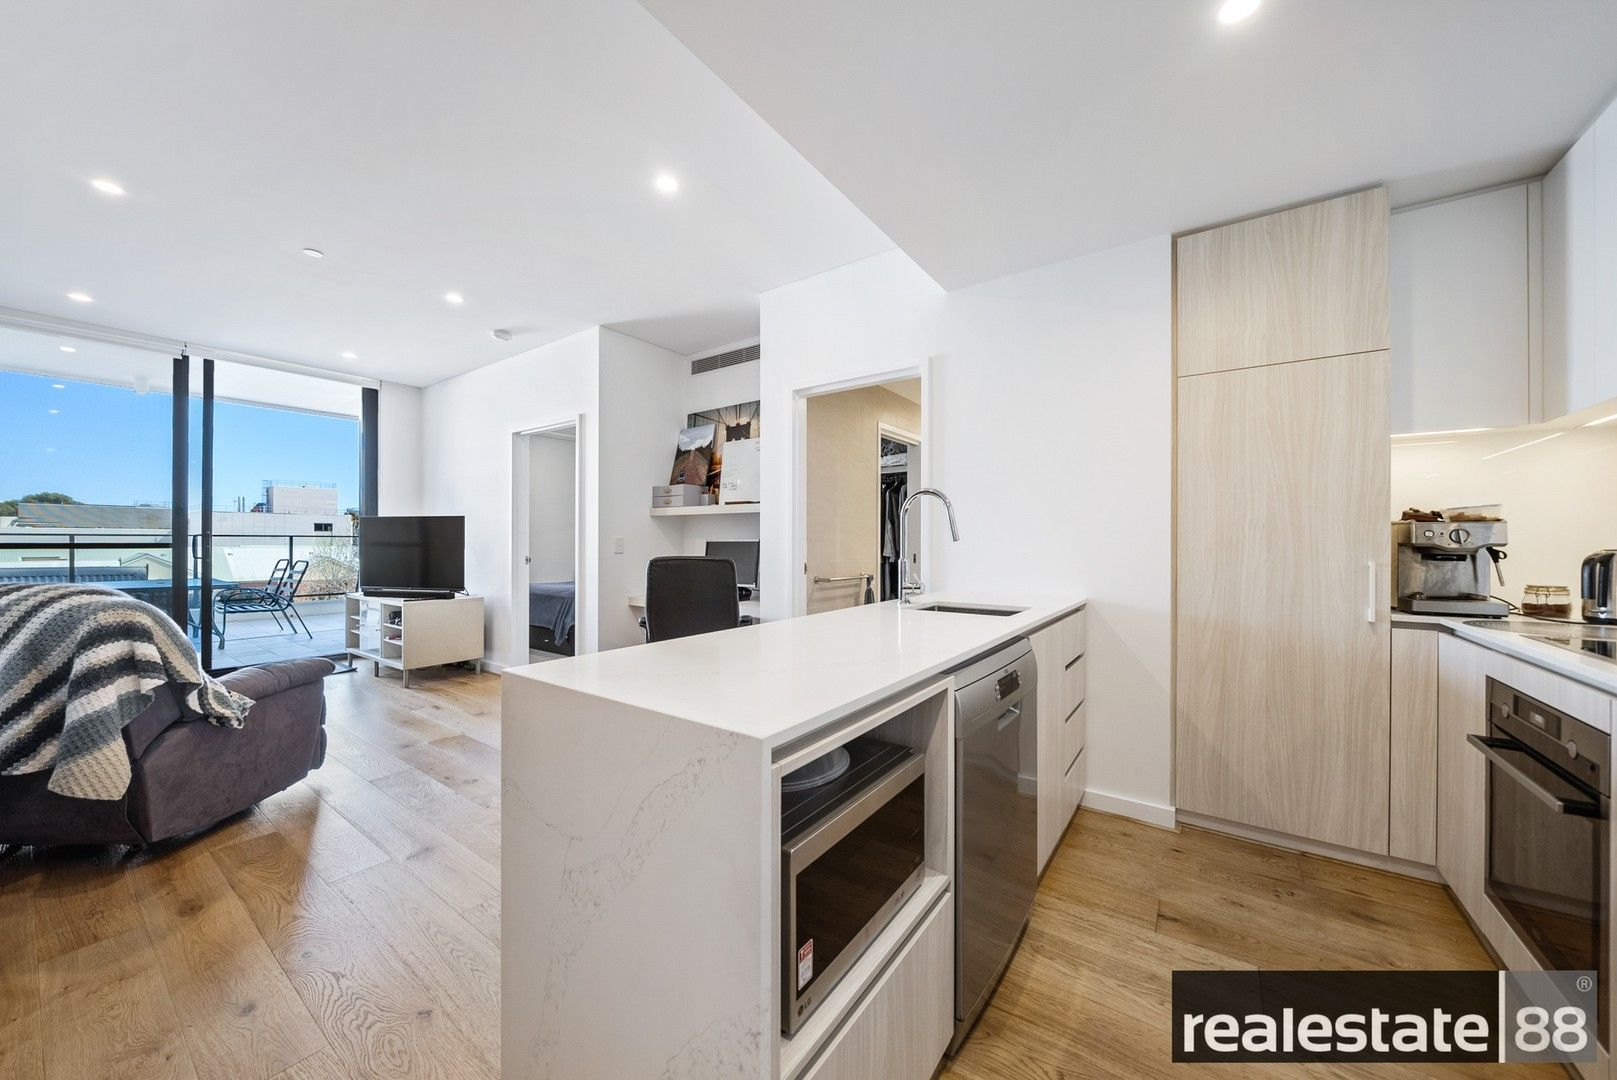 1 bedrooms Apartment / Unit / Flat in 103/35 Bronte Street EAST PERTH WA, 6004